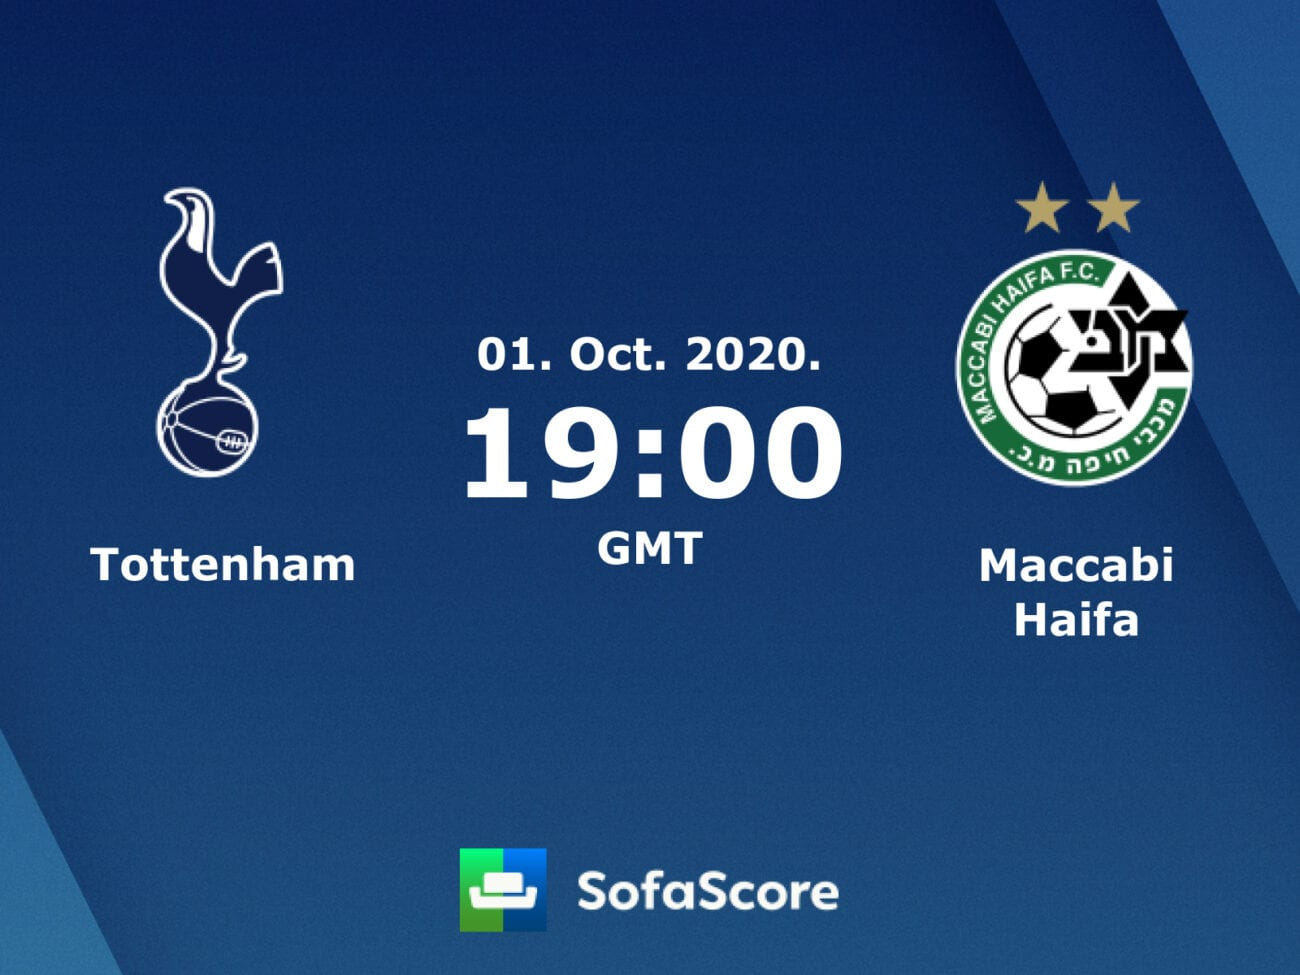 Are you looking forward to the Tottenham vs Maccabi match tonight? Find out if you can live stream the match on Reddit.